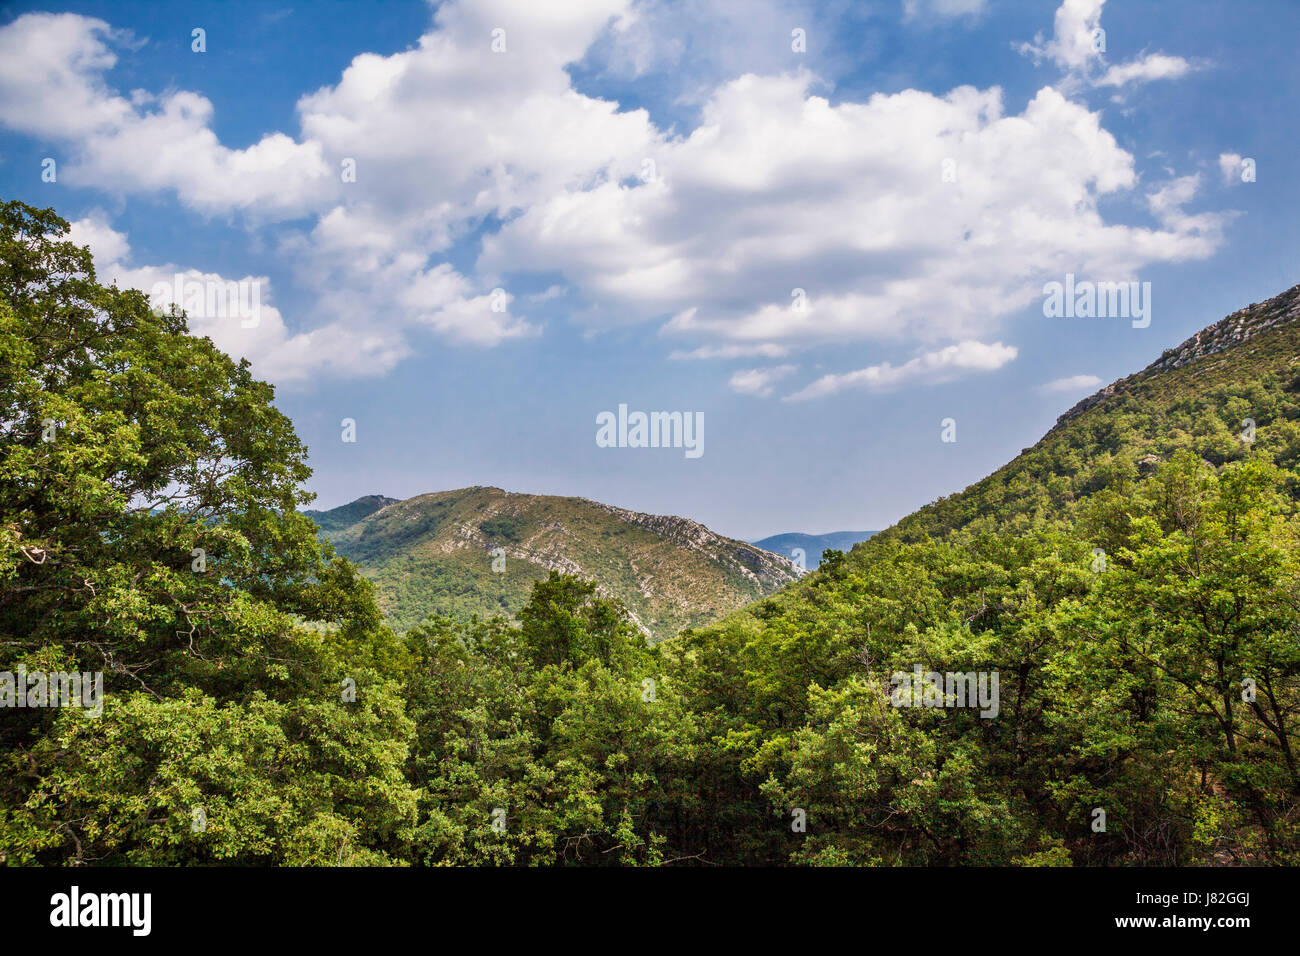 France, Languedoc-Roussillon-Midi-Pyrenees region, department Gard, view from Col du Lac in the Cevennes near Sumene - Stock Image